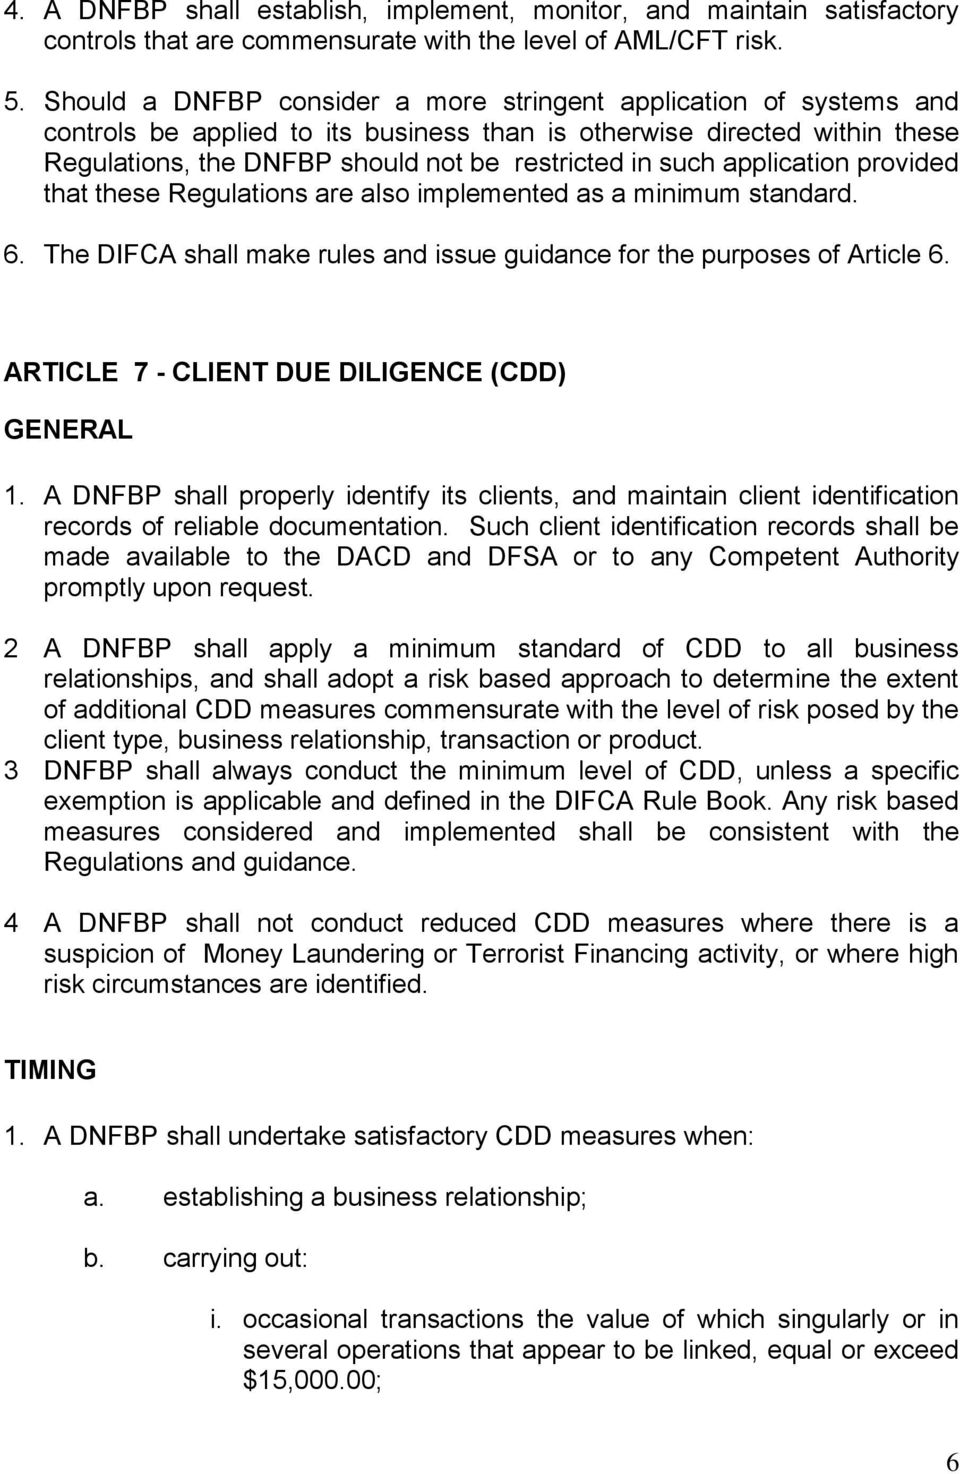 application provided that these Regulations are also implemented as a minimum standard. 6. The DIFCA shall make rules and issue guidance for the purposes of Article 6.